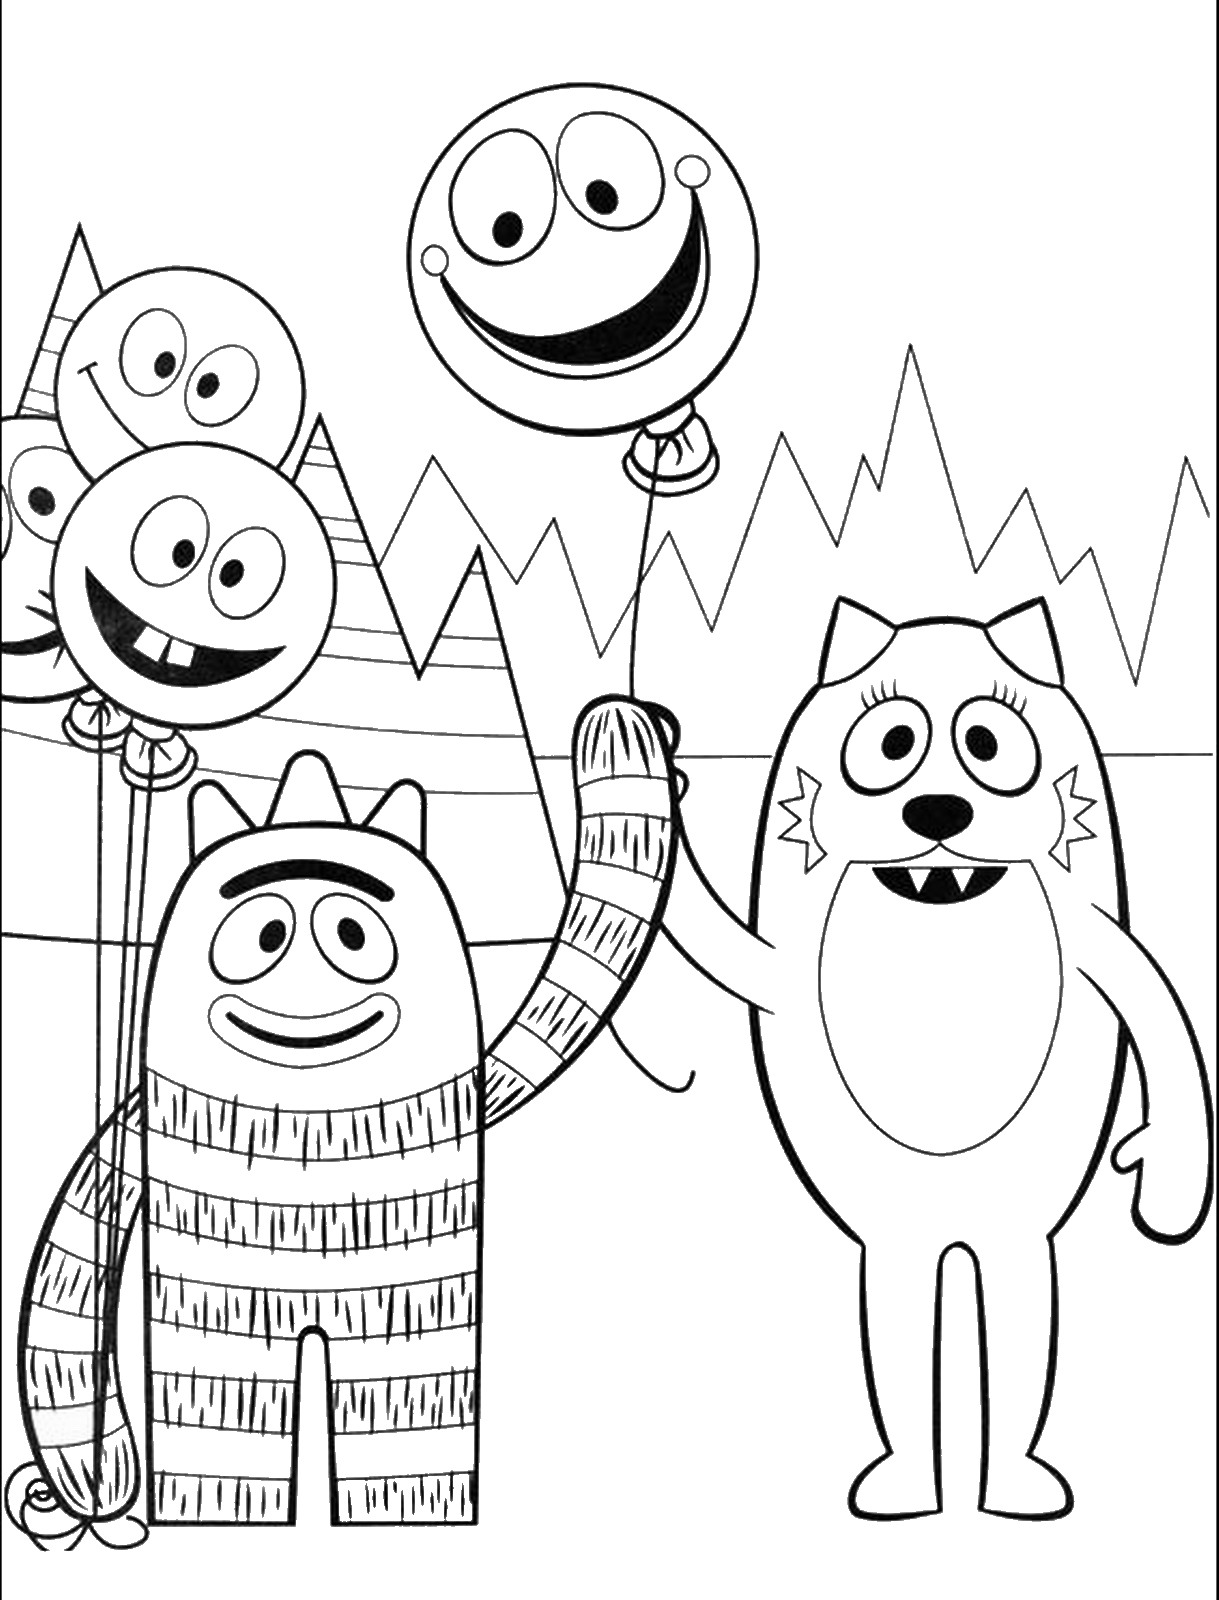 Yo Gabba Gabba Coloring Pages At Getcolorings